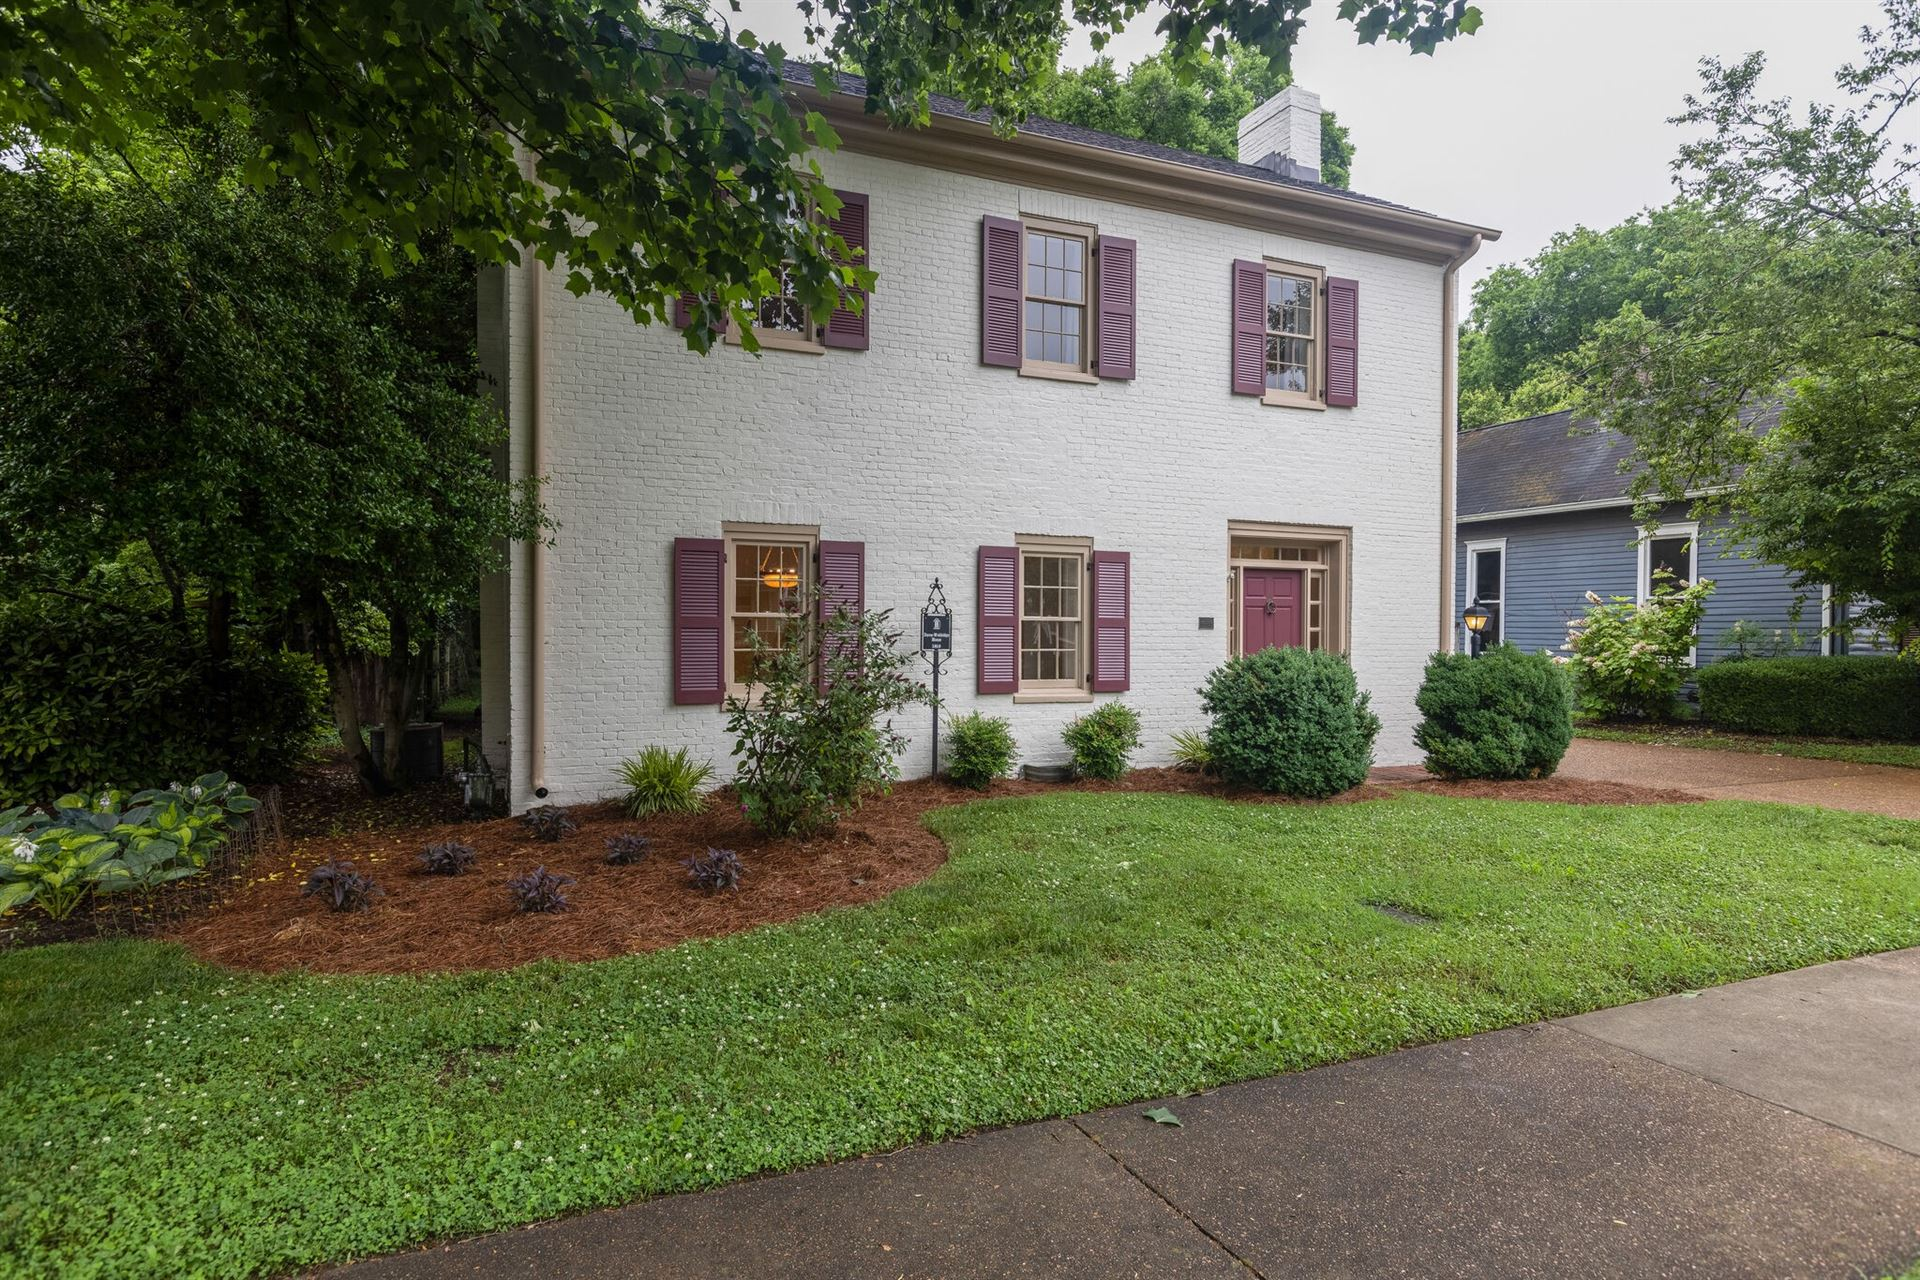 Photo of 217 2nd Ave S, Franklin, TN 37064 (MLS # 2261897)